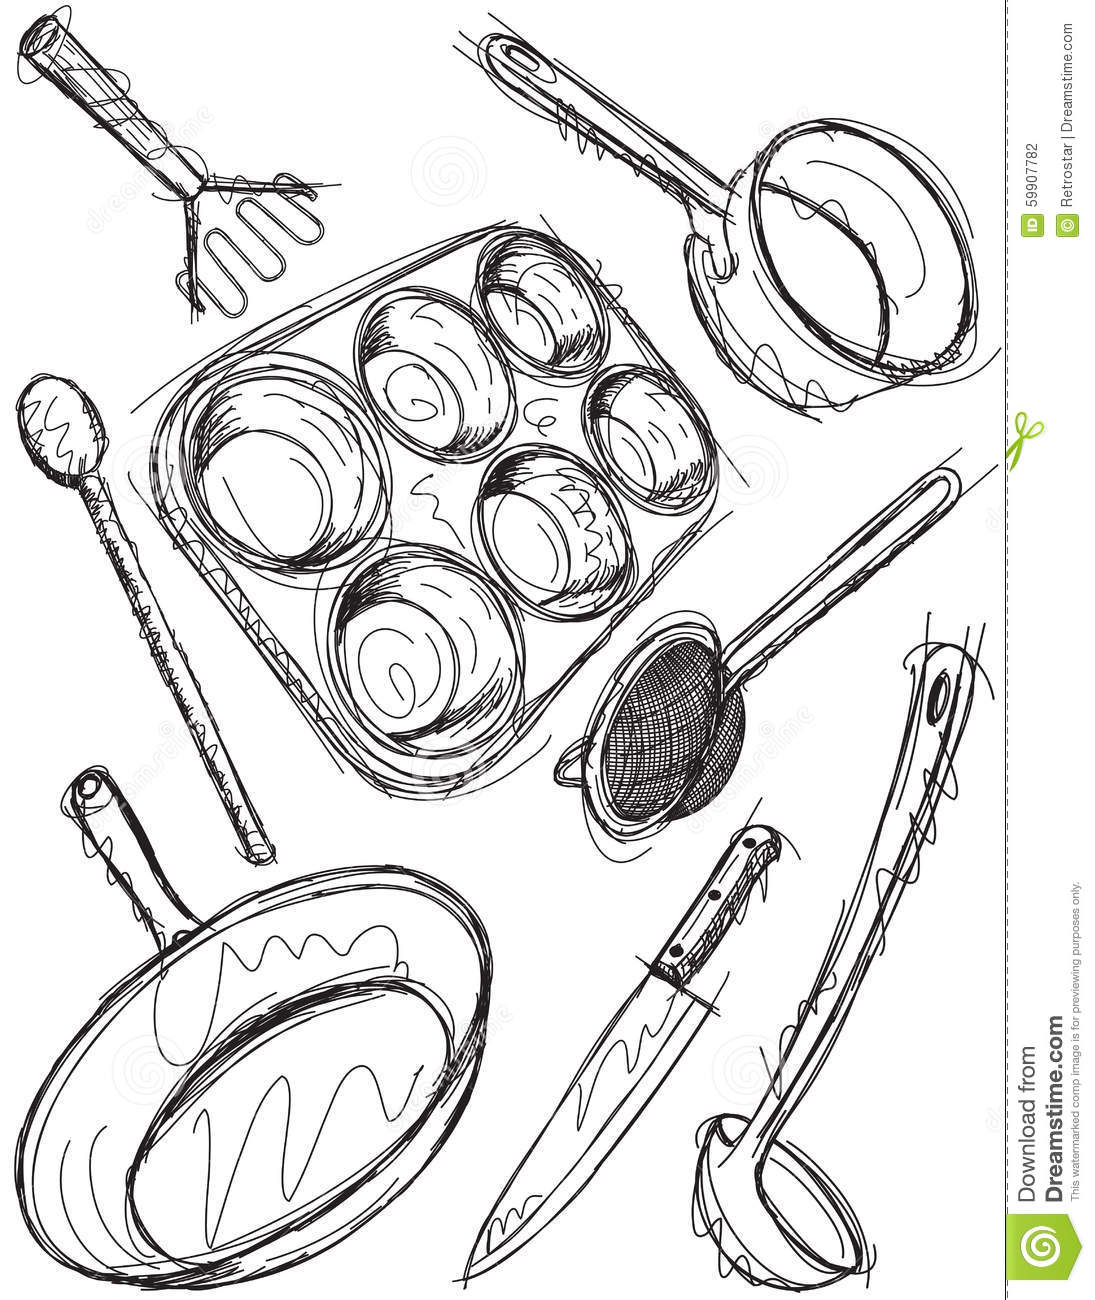 Cooking Utensil Sketches Stock Vector